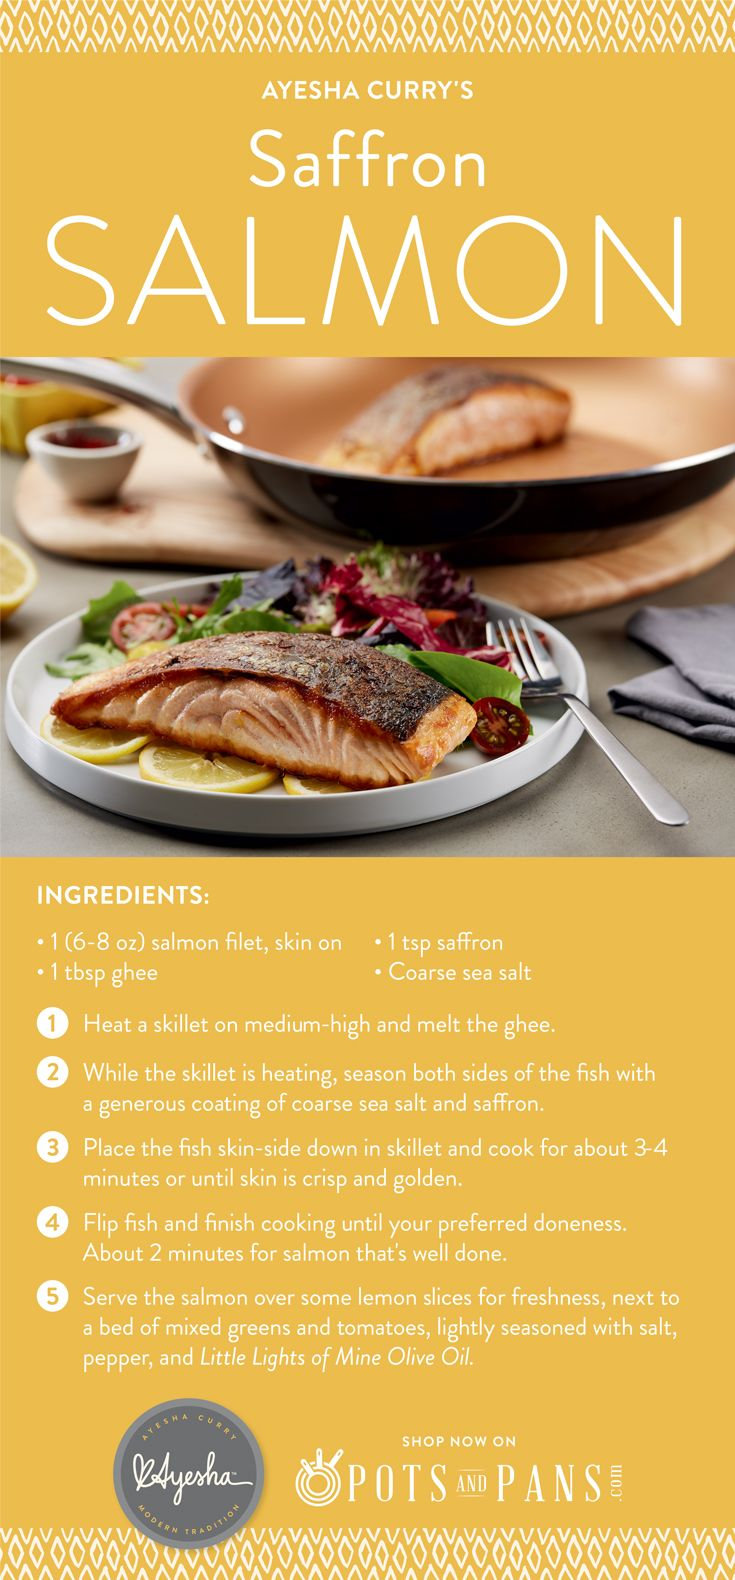 Ayesha Curry S Saffron Salmon Is The Perfect Fusion Of Flavor For A Quick And Easy Lunch T Easy Healthy Recipes Healthy Meals To Cook Healthy Recipes